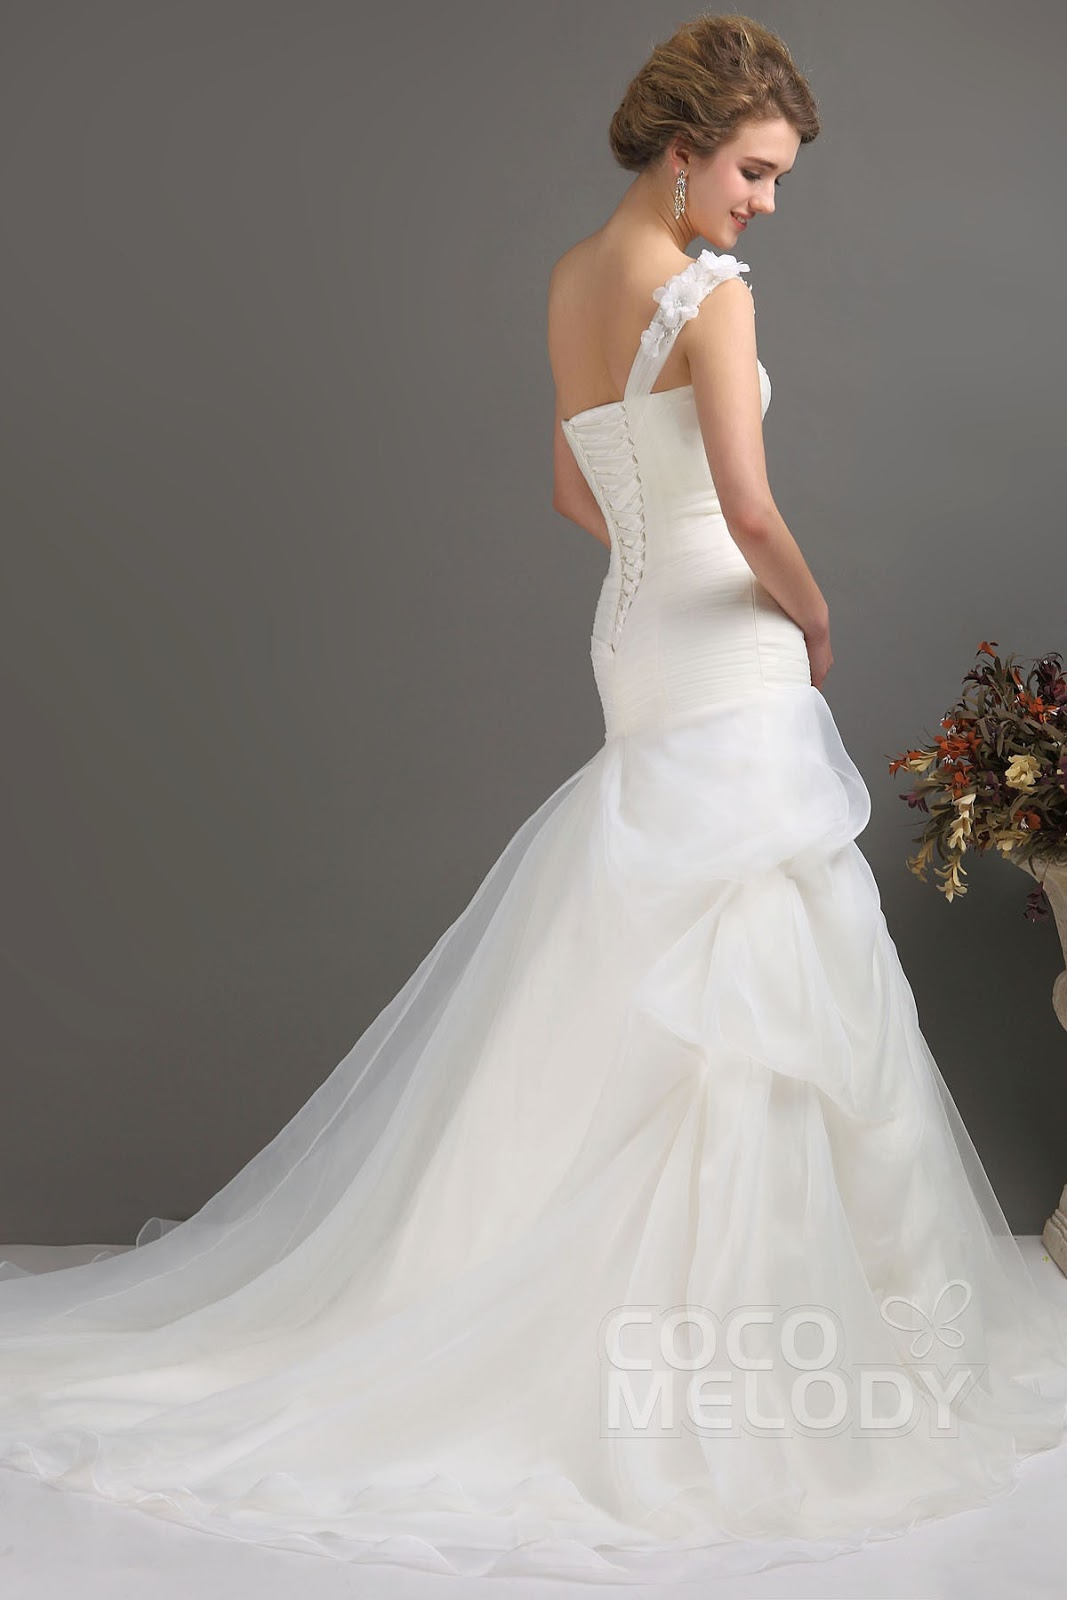 bridesmaid dresses 2013 German wedding dress could show the